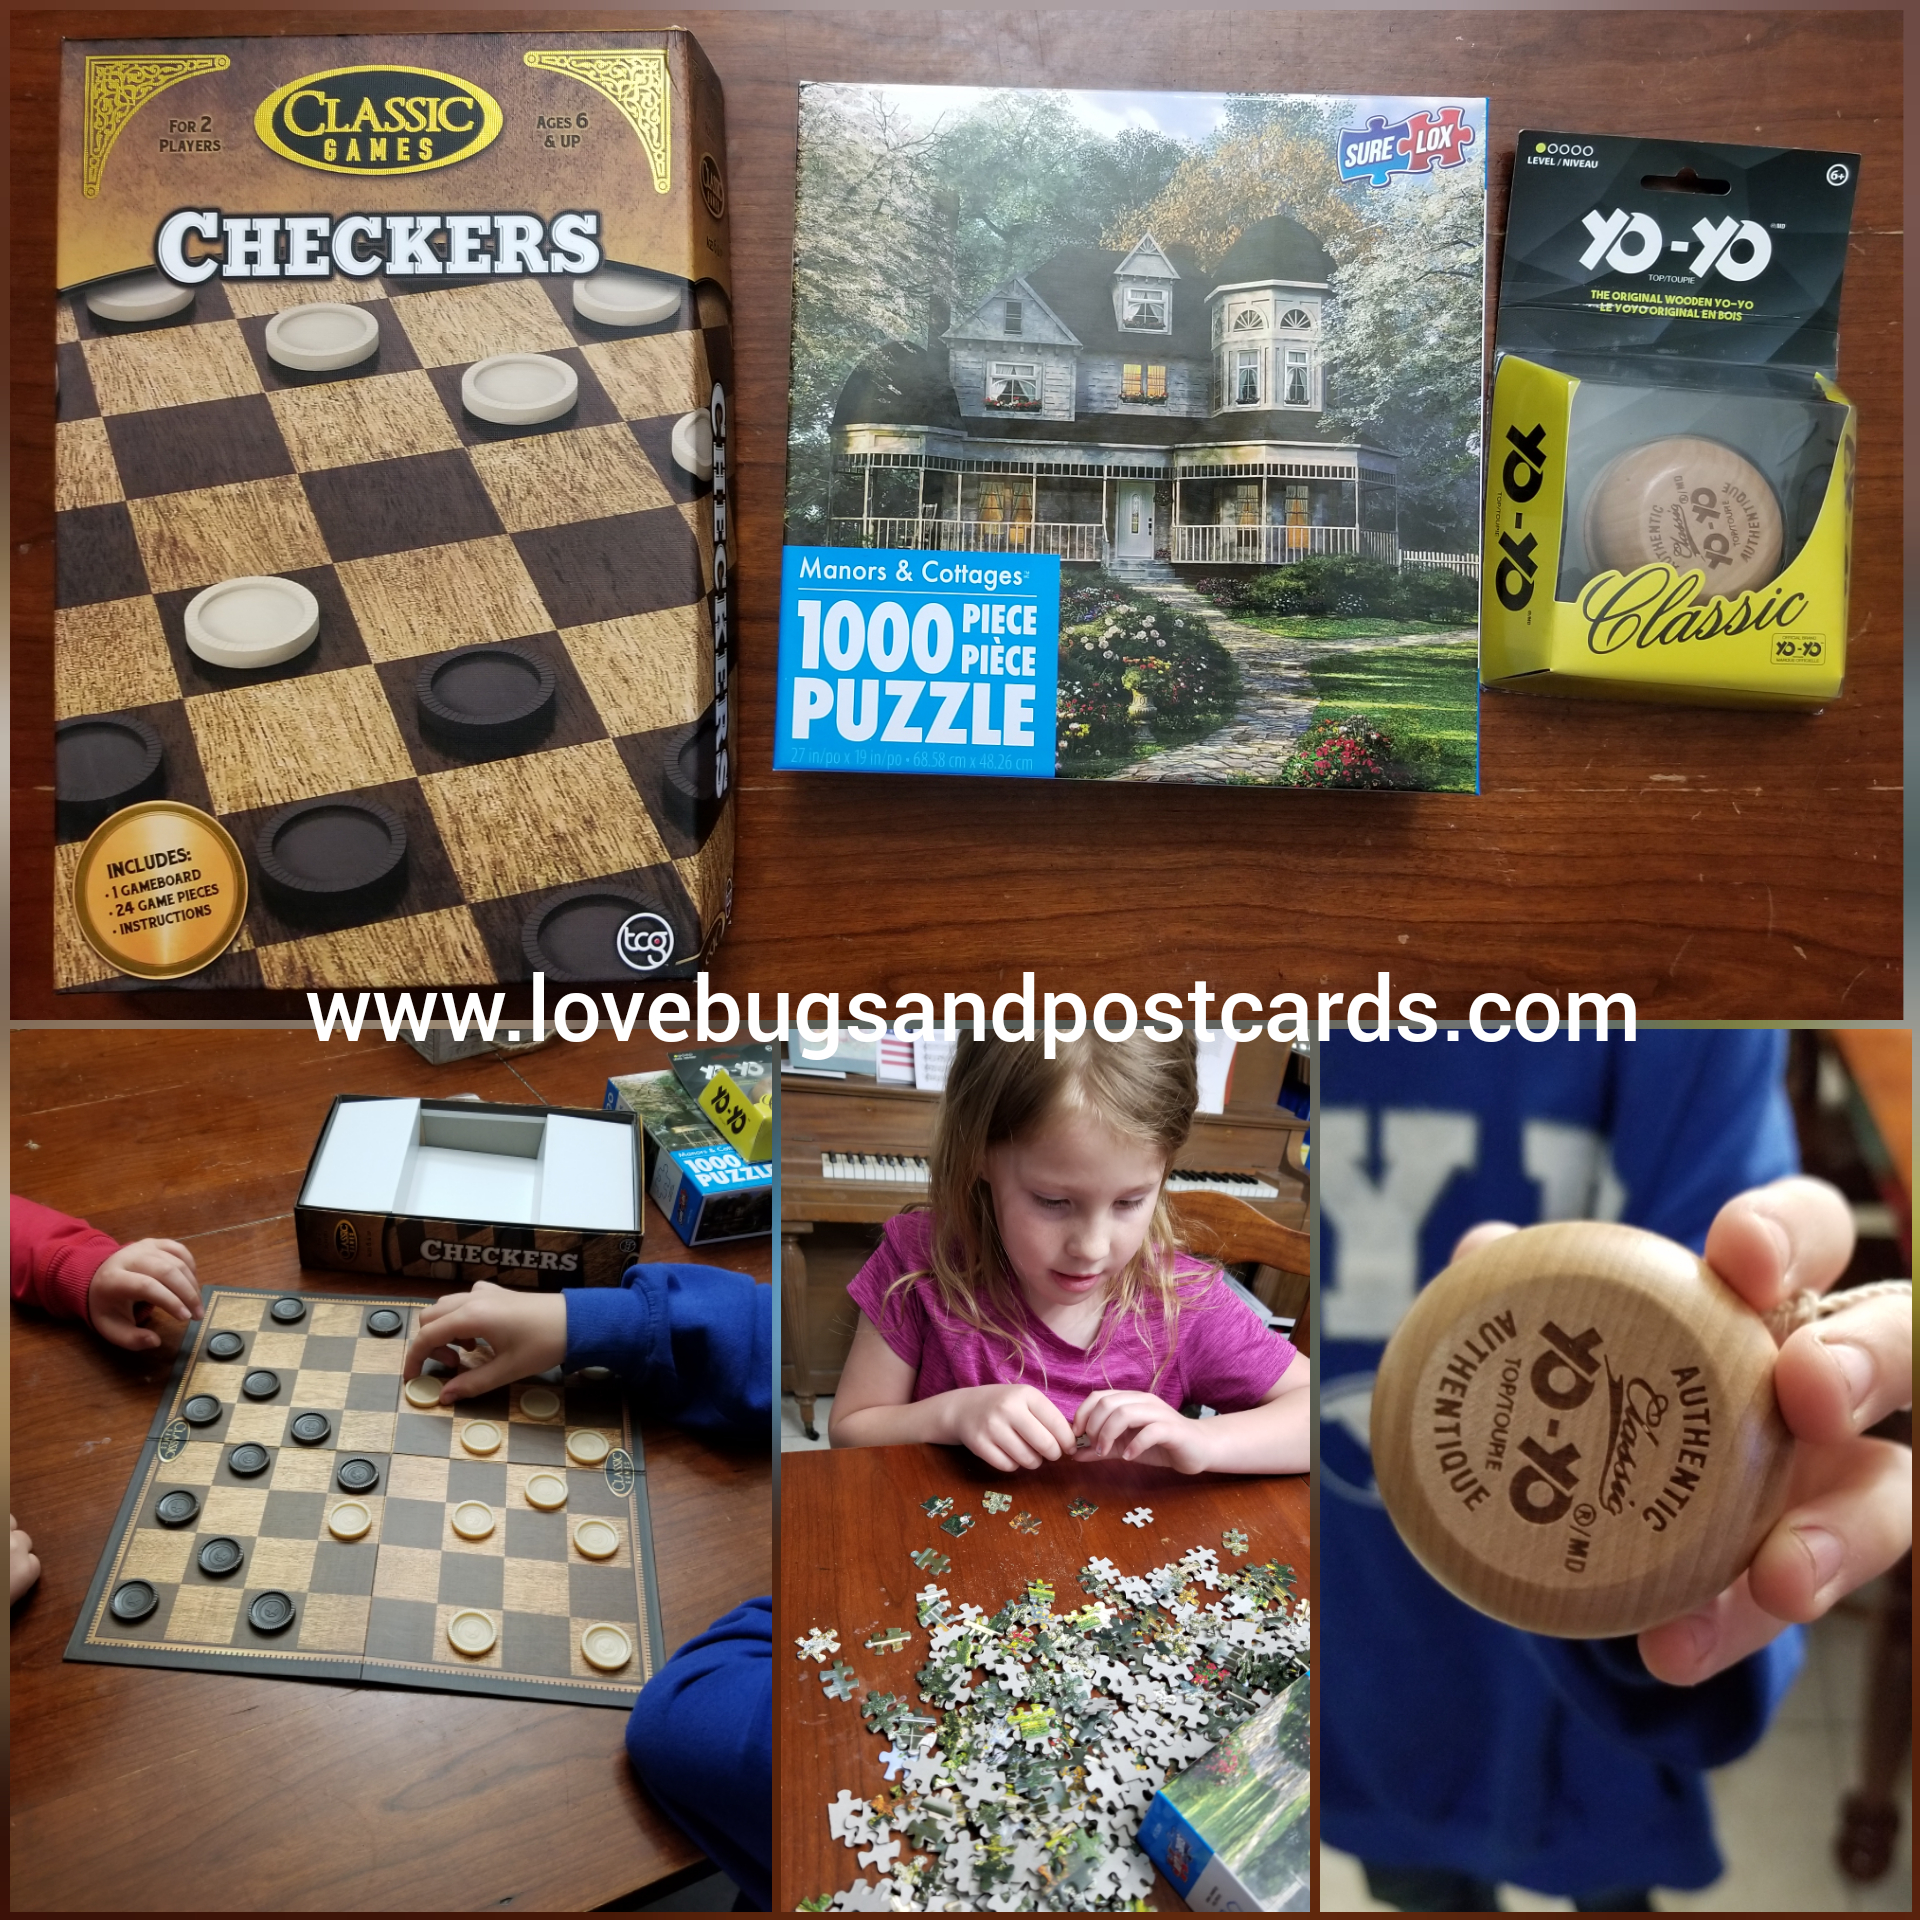 Family fun night with TCG Toys giveaway